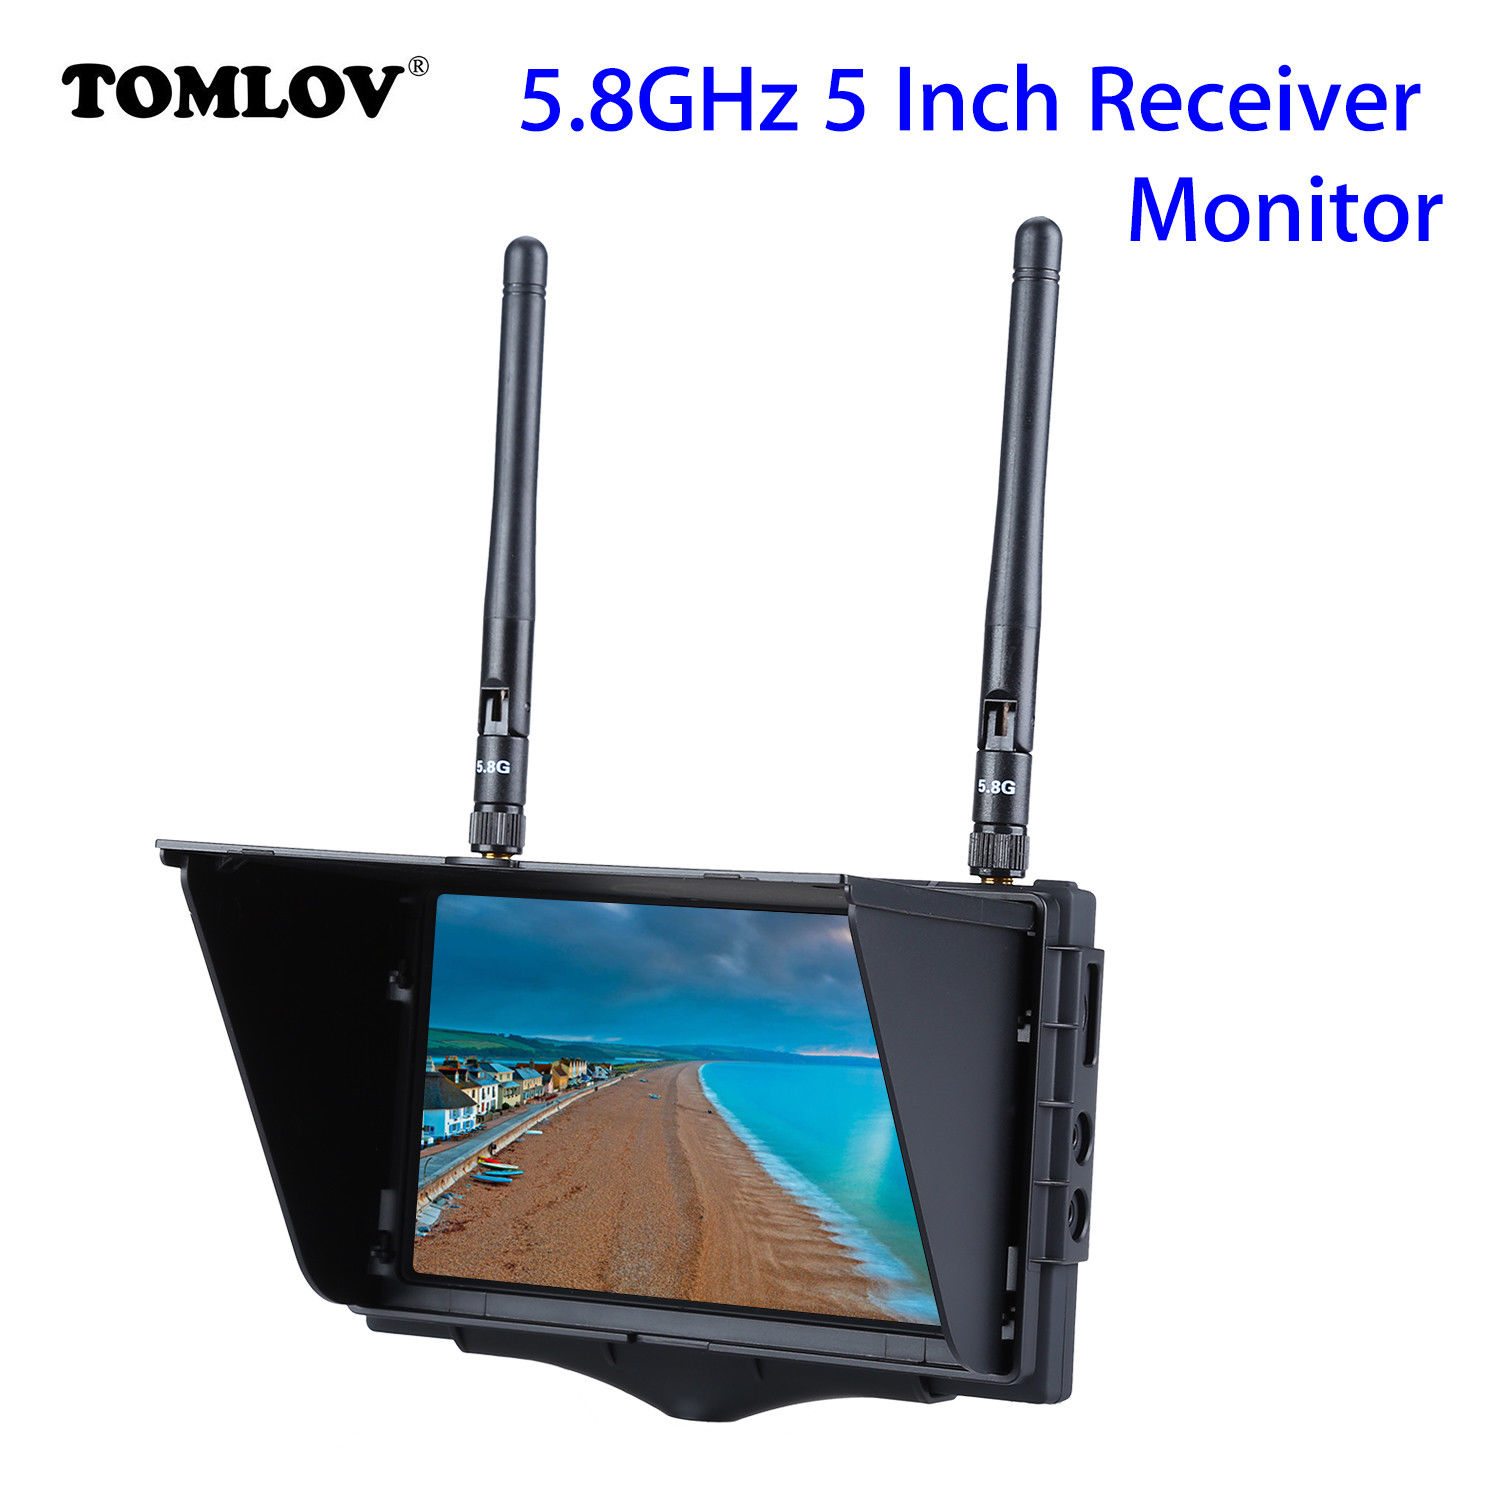 TOMLOV FX508 5.8GHz High Brightness 5 LCD Monitor Diversity Receiver With DVR Function 800x480 Pixels 40CH For RC Quadcopter pv 5 8 ghz 40ch rd40 diversity receiver with a v and power cables